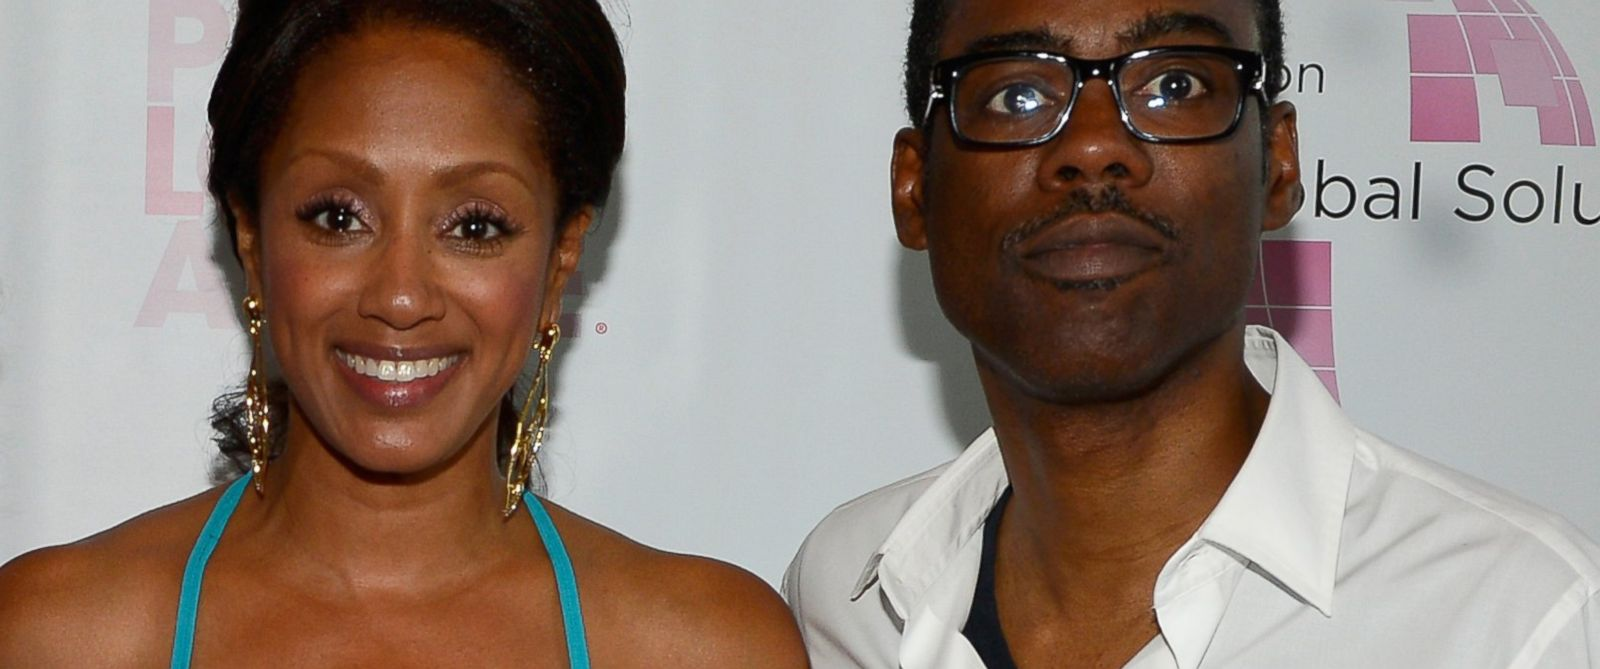 PHOTO: Malaak Compton-Rock and Chris Rock attend the 2013 Peace, Love & A Cure Triple Negative Breast Cancer Foundation Benefit on May 21, 2013 in Cresskill, N.J.